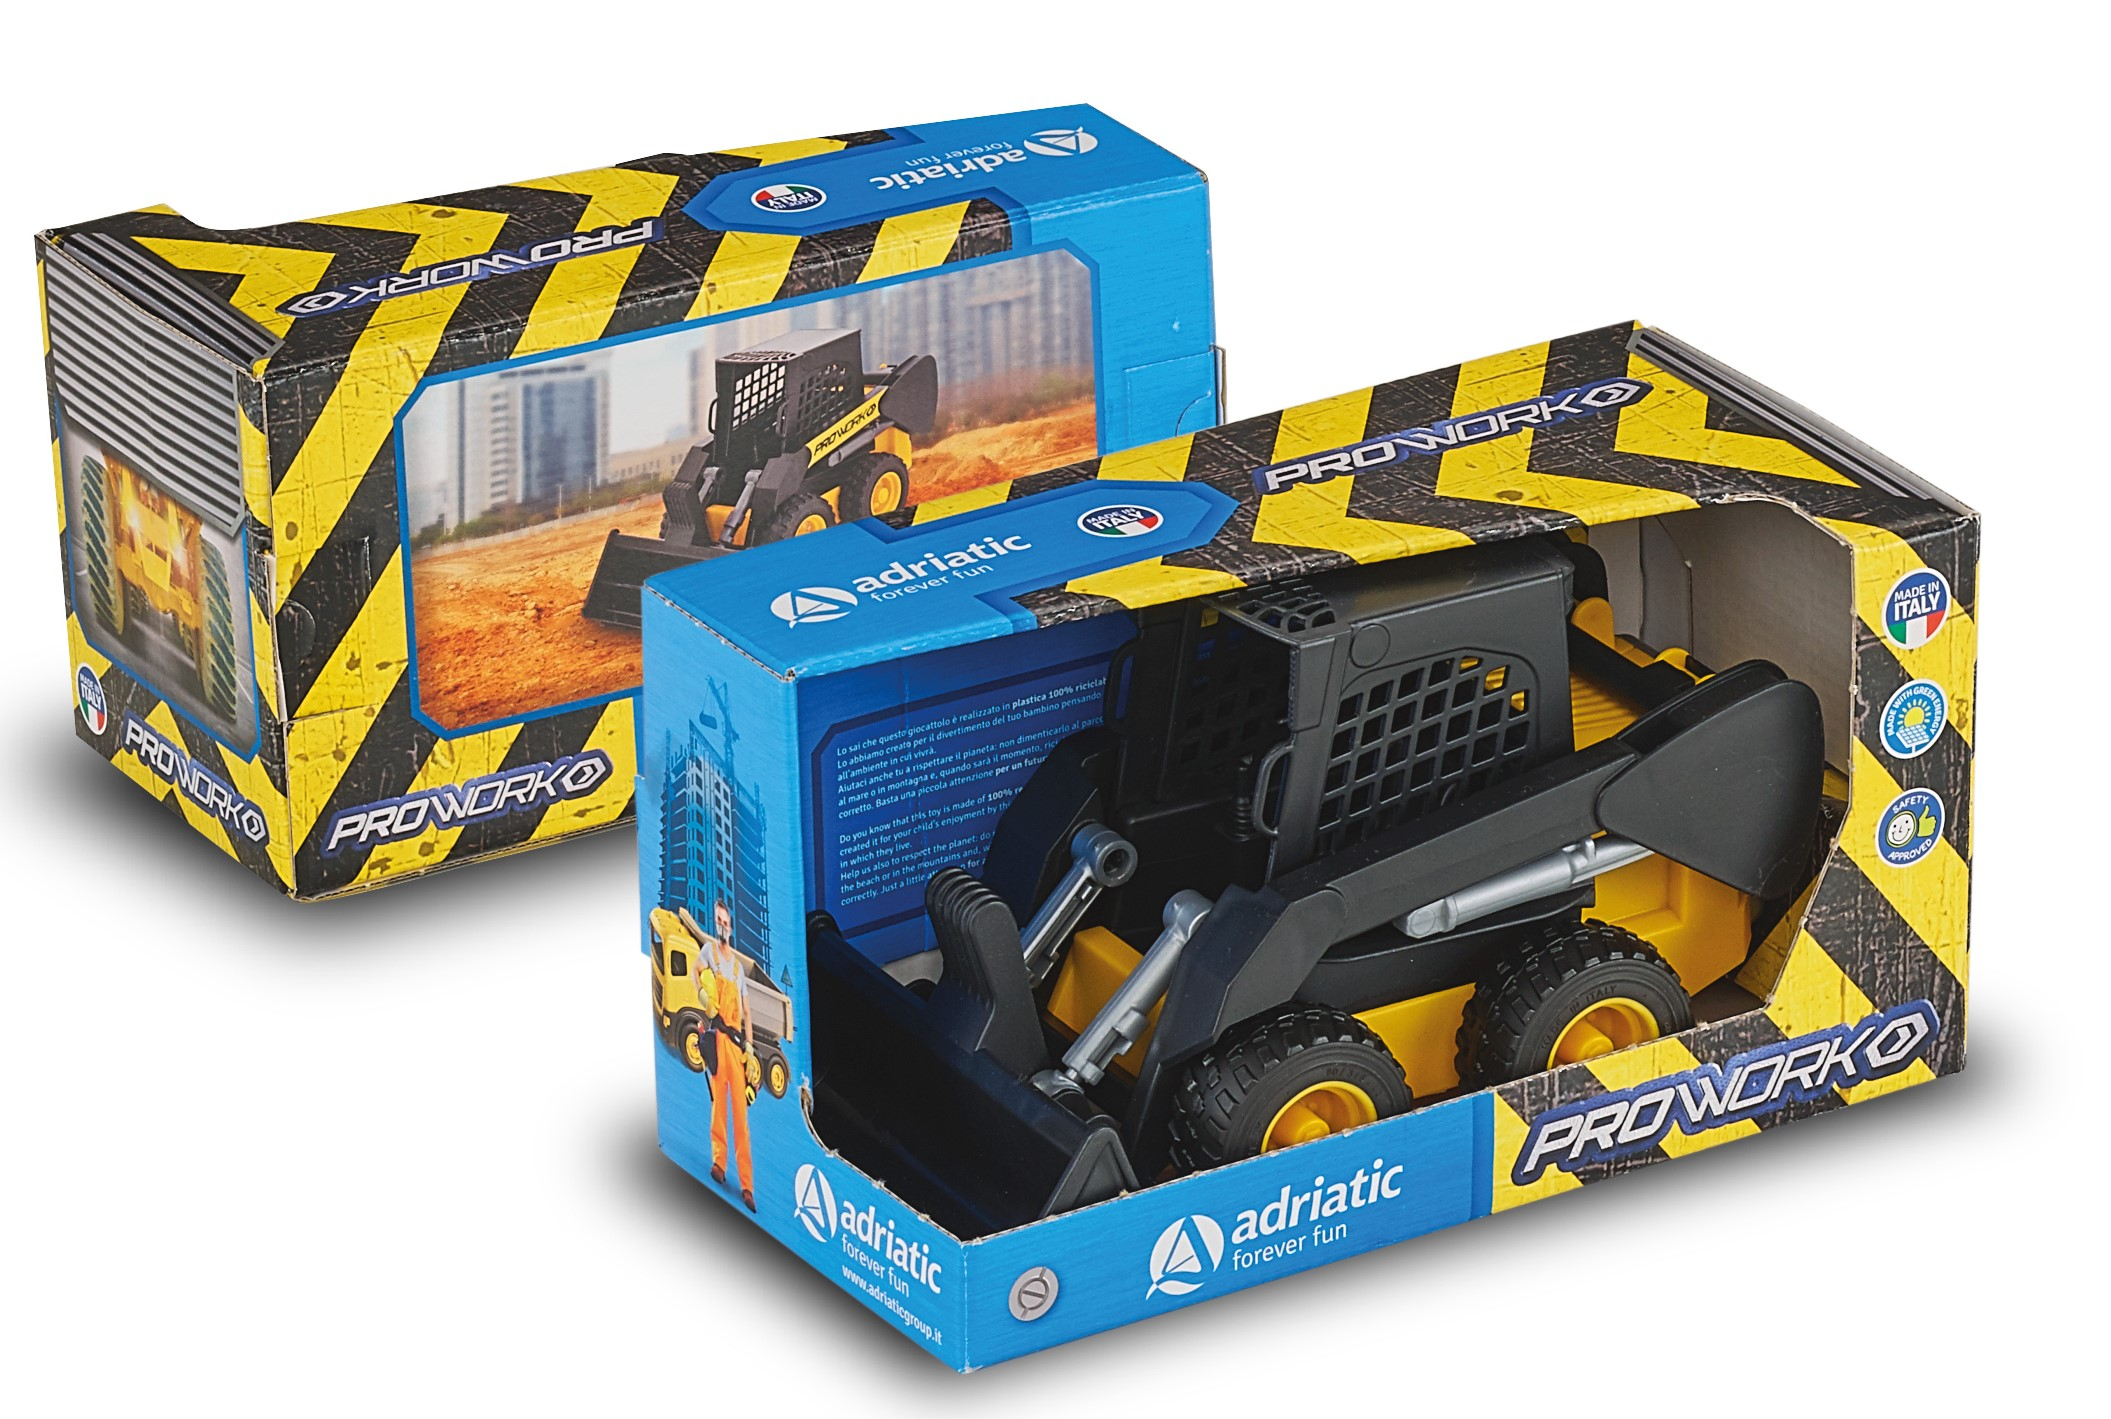 Skid NEW HOLLAND 603 ADRIATIC